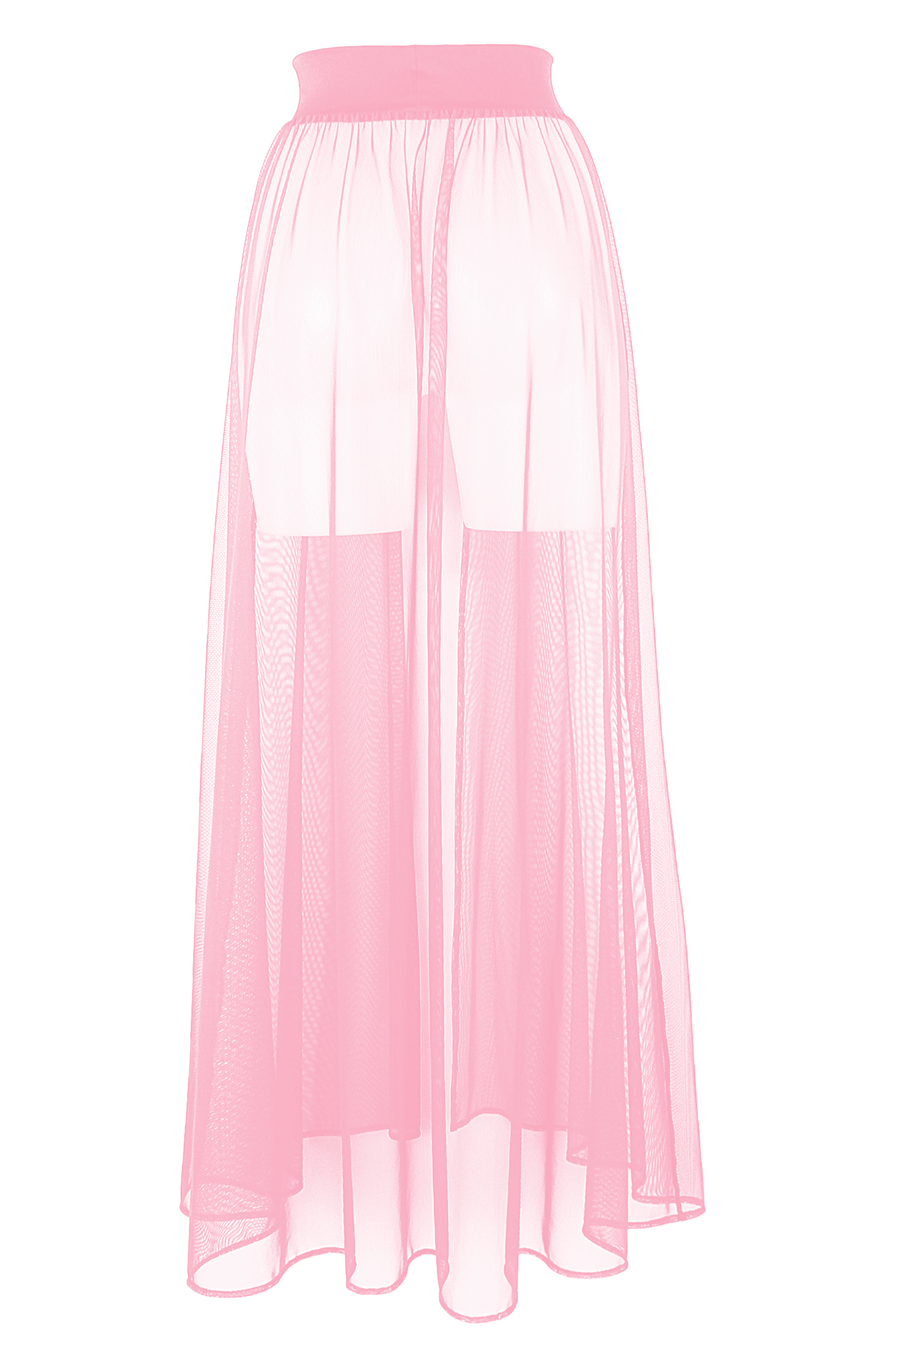 MESH MAXI SKIRT / Cover-up Long Festivals Skirt / BABY PINK - EXES LINGERIE